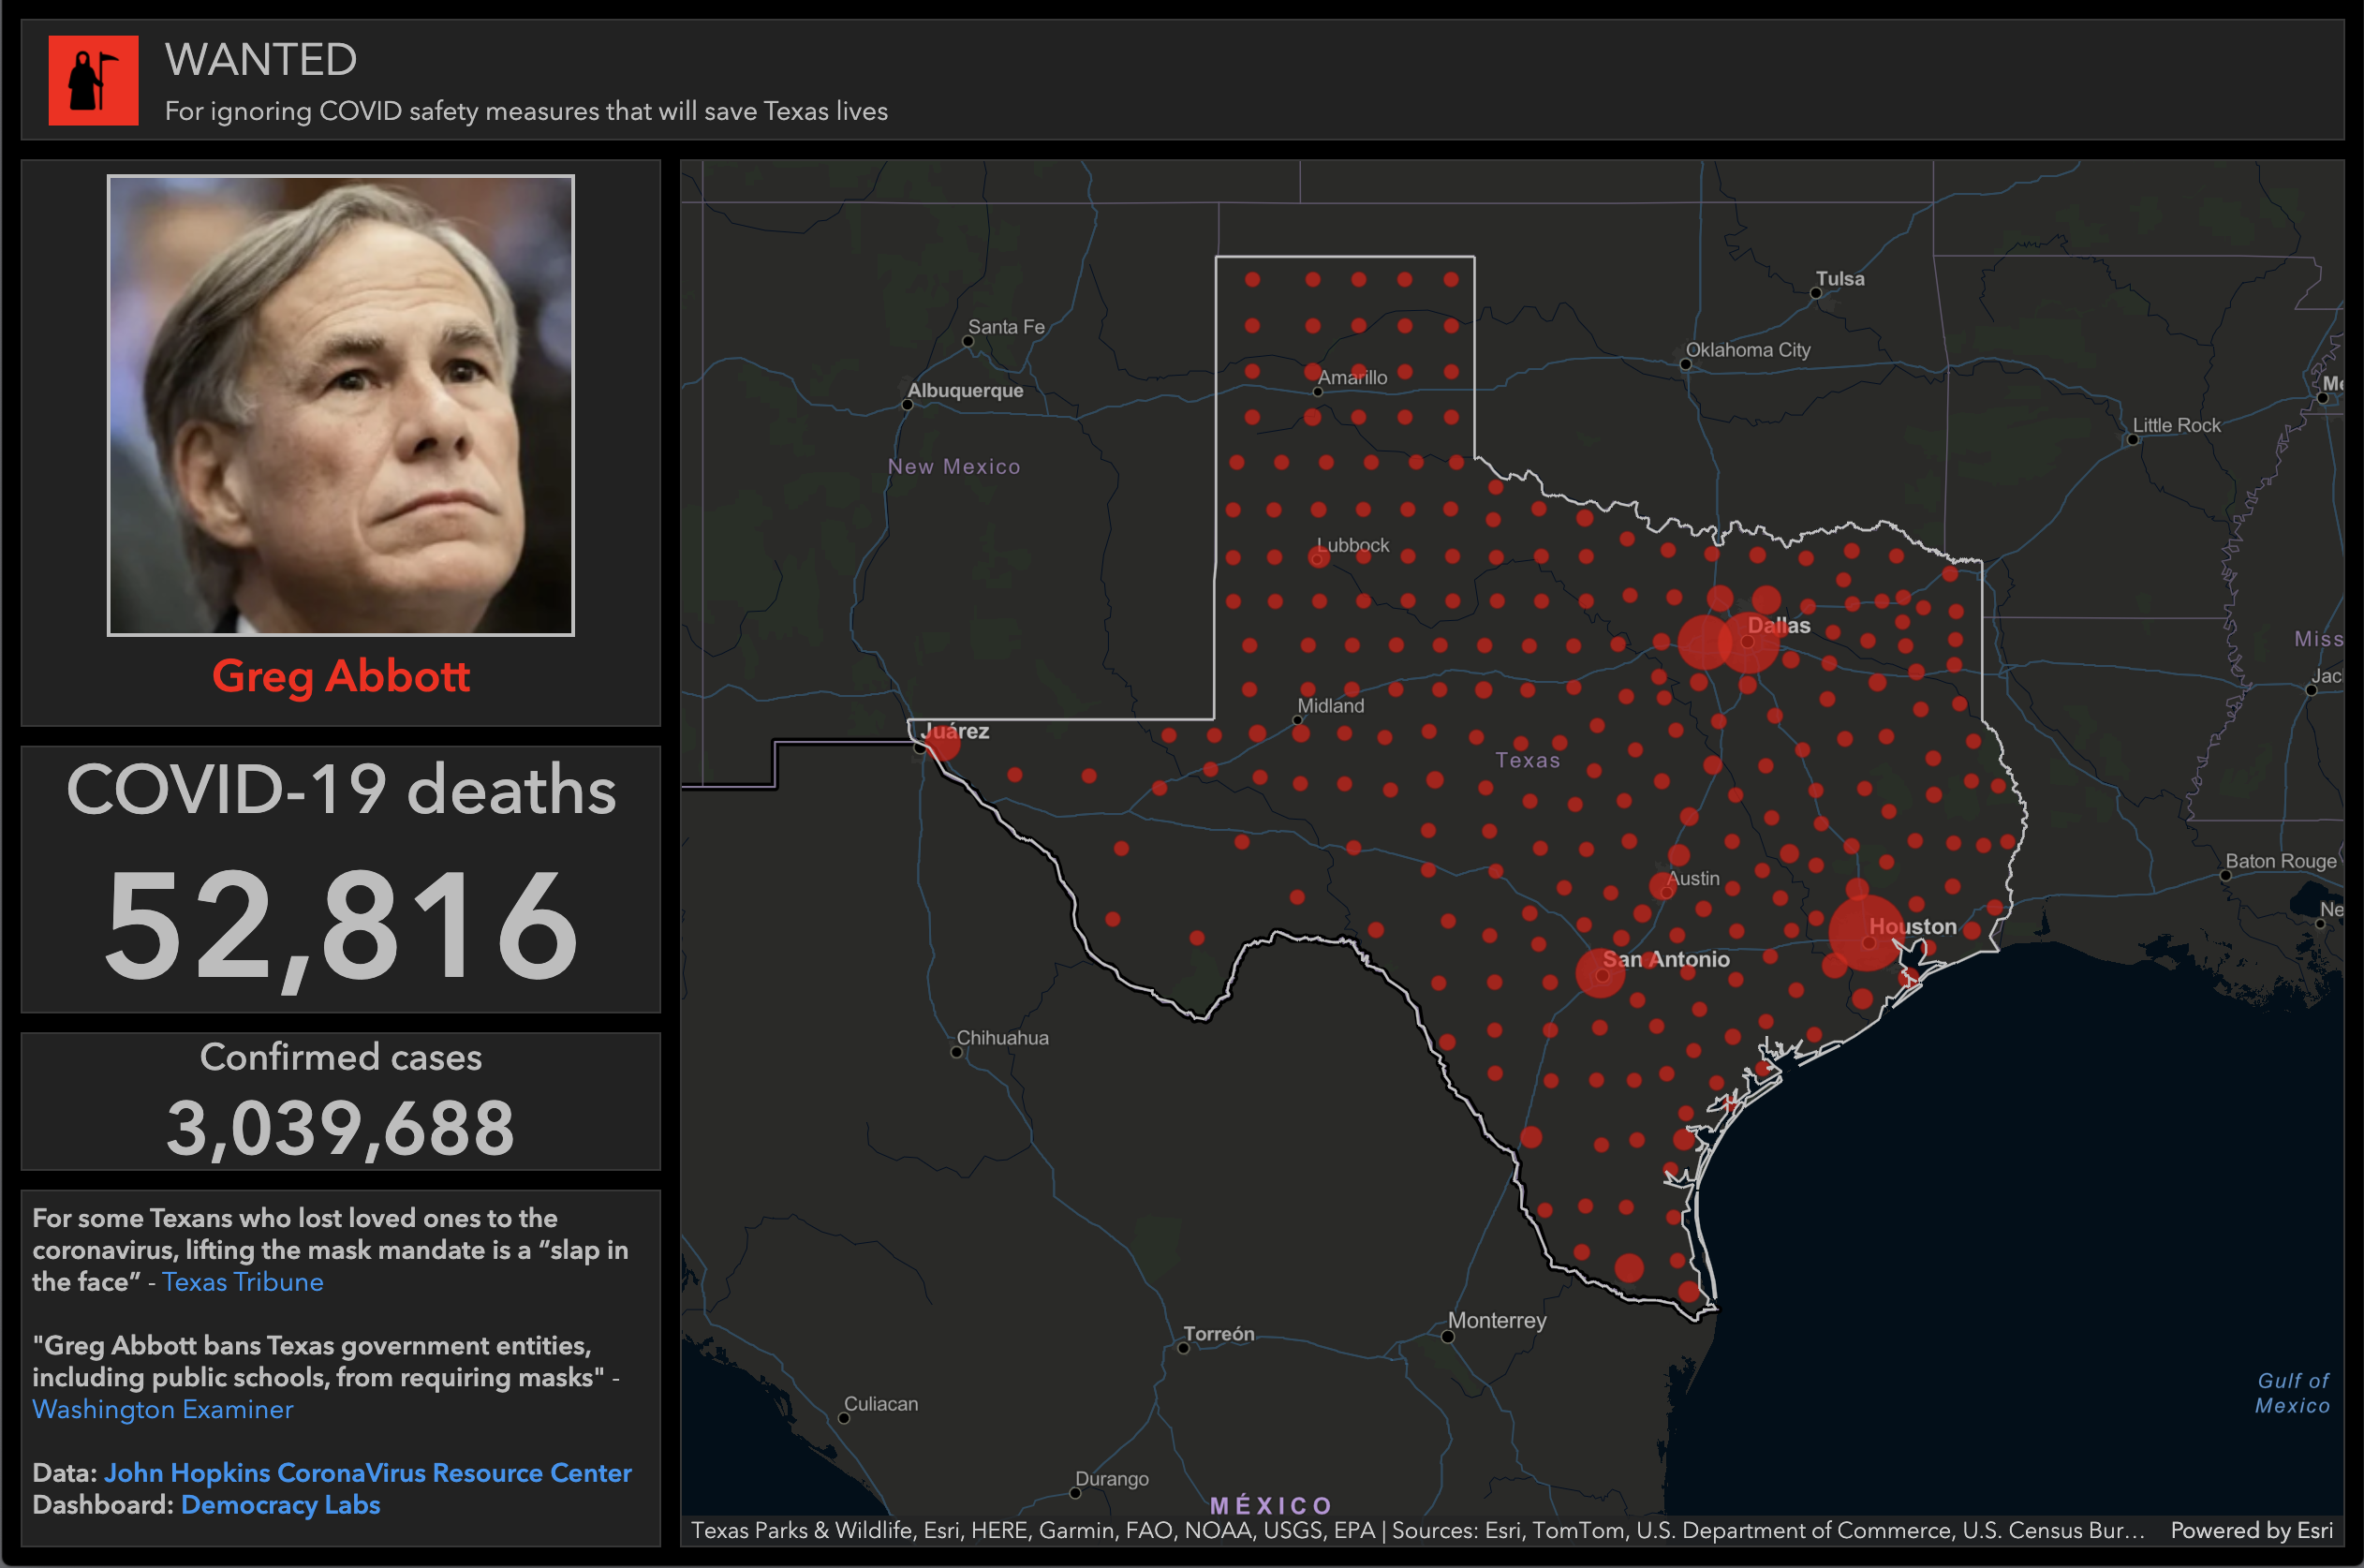 Greg Abbott blocks COVID-19 safety precautions as the pandemic rages in Texas